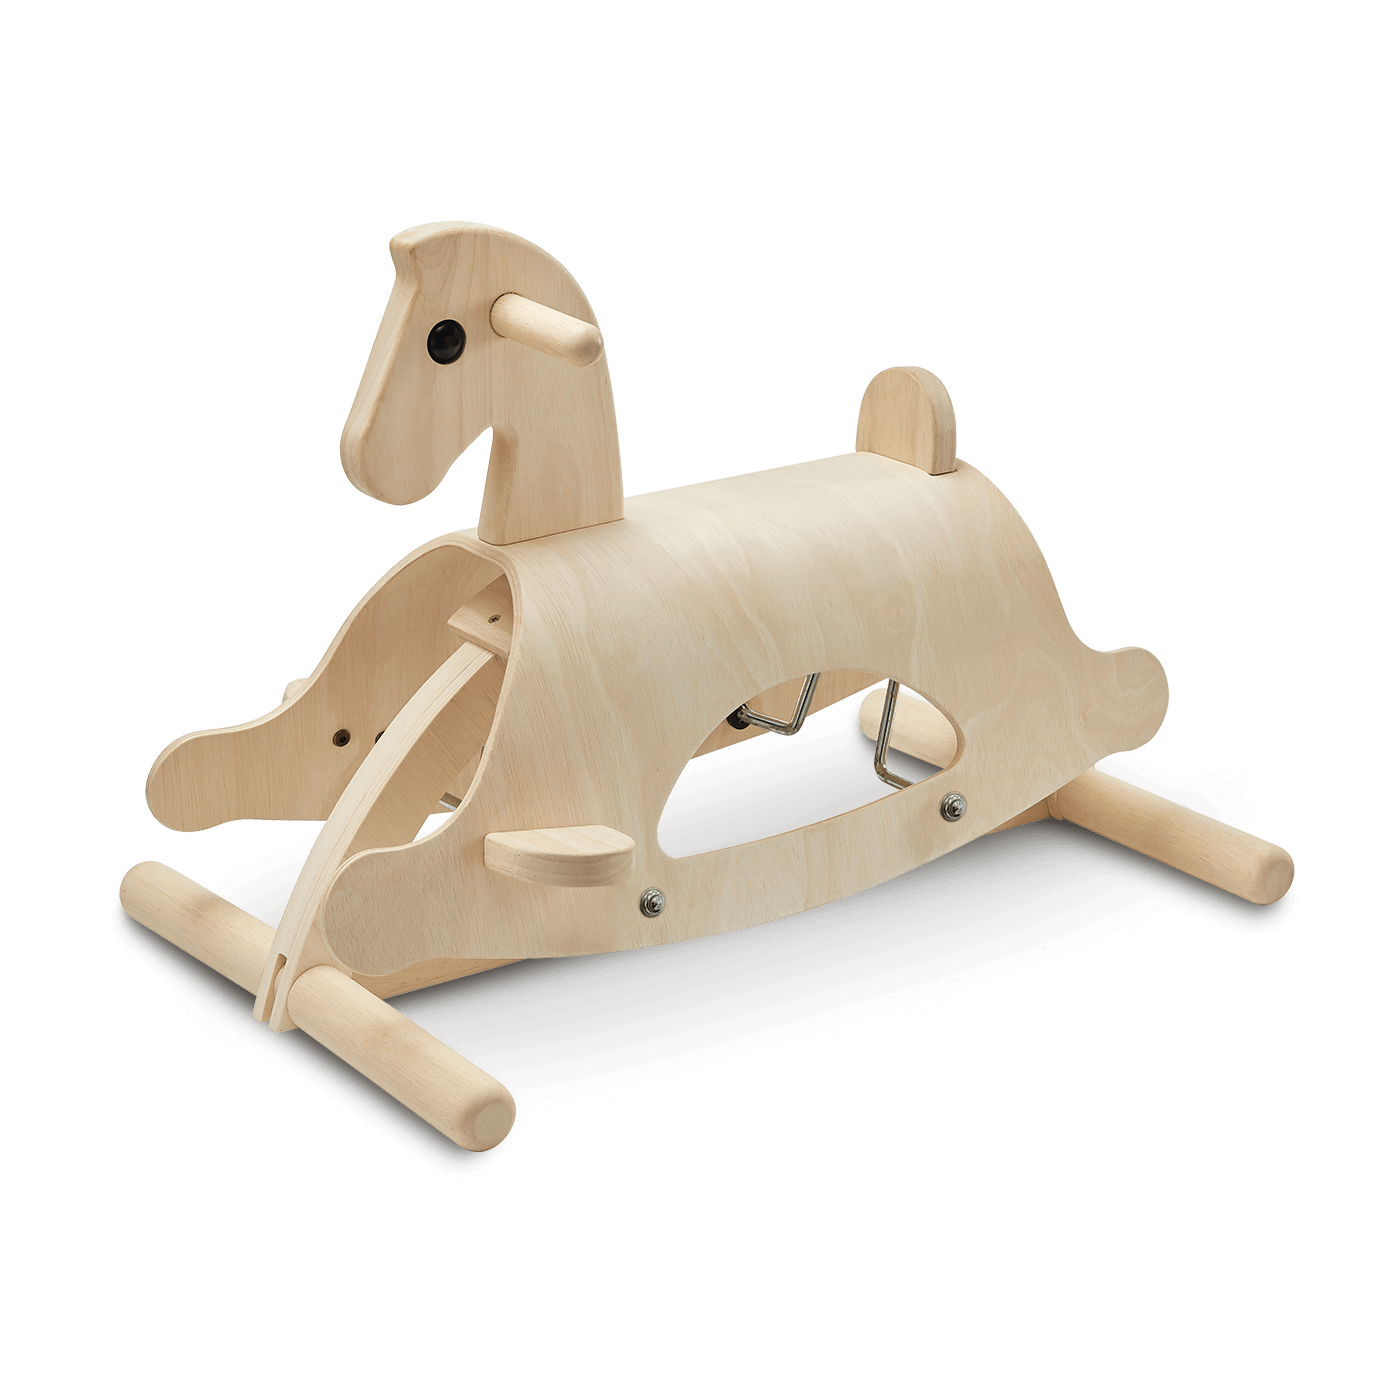 3502_PlanToys_LUSITANO_Active_Play_Gross_Motor_Coordination_Imagination_Language_and_Communications_2yrs_Wooden_toys_Education_toys_Safety_Toys_Non-toxic_0.png